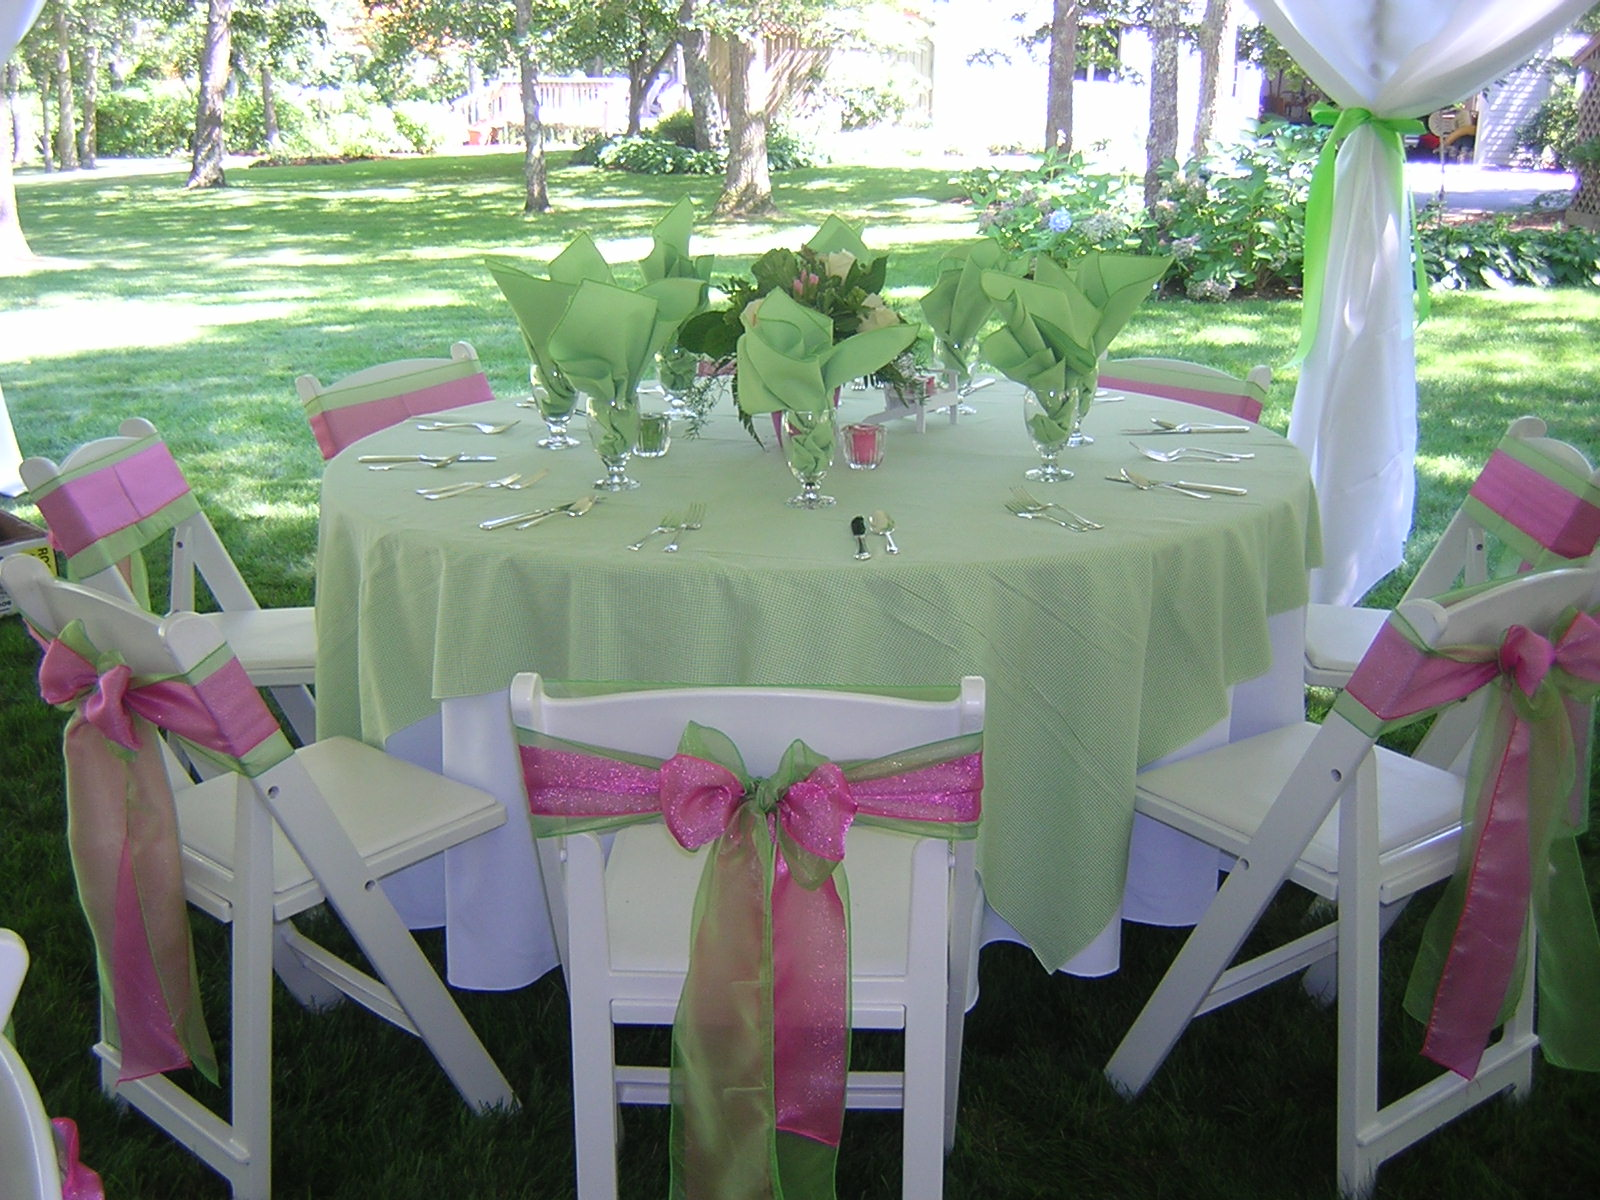 decorating your wedding tent cool beautiful and beautiful dressespic 2013. Black Bedroom Furniture Sets. Home Design Ideas